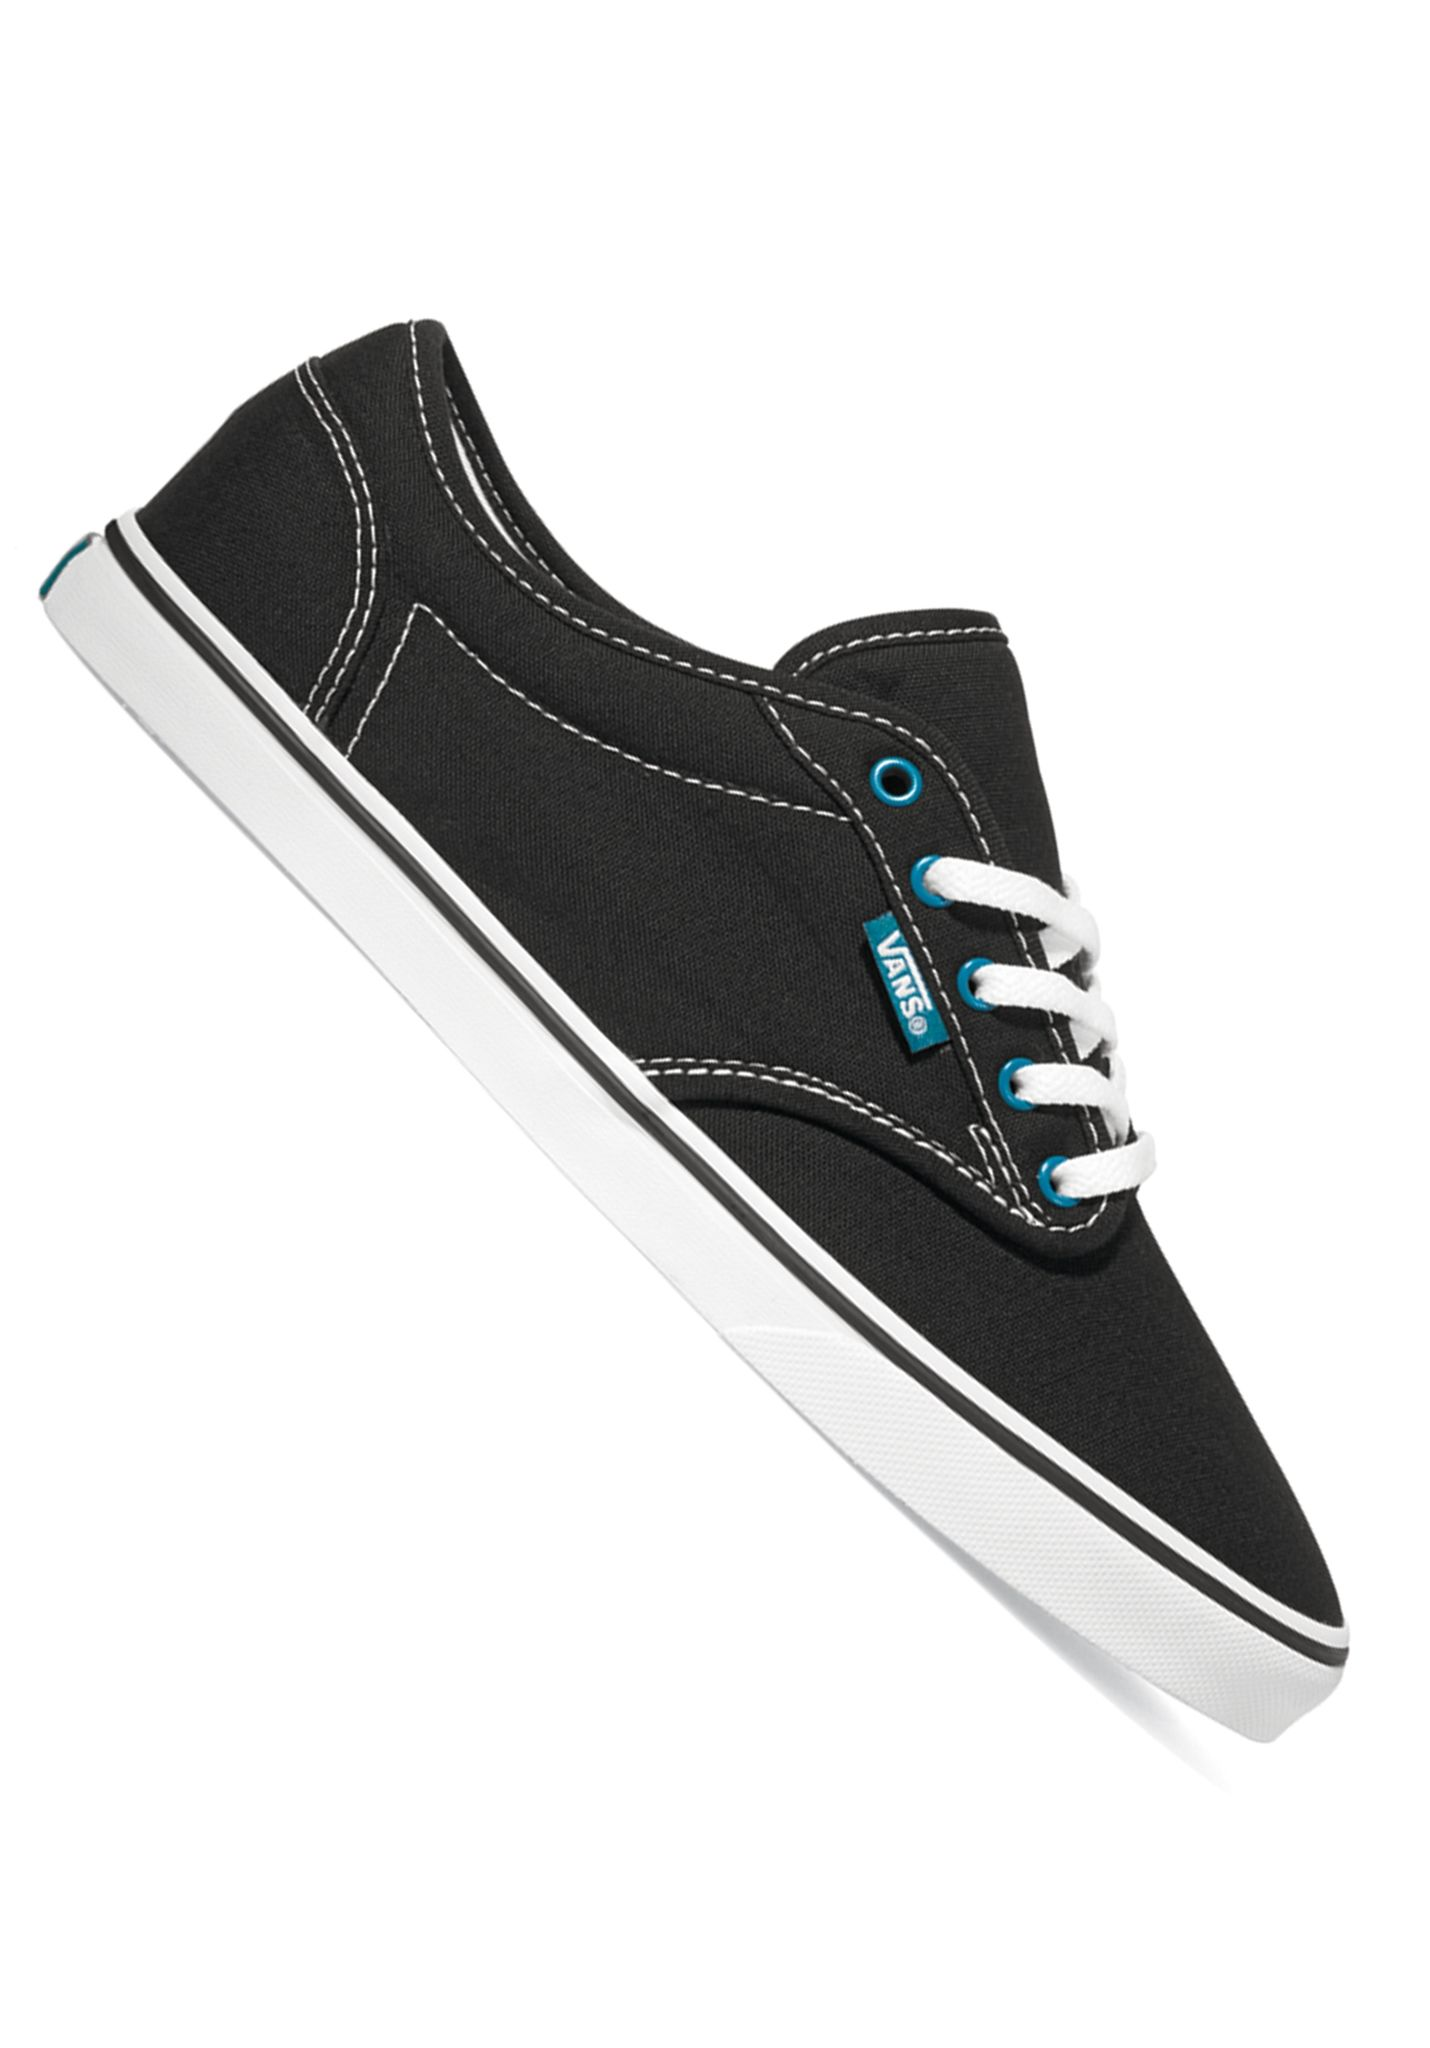 Vans Atwood Low - Sneakers for Women - Black - Planet Sports 42cc792c8d